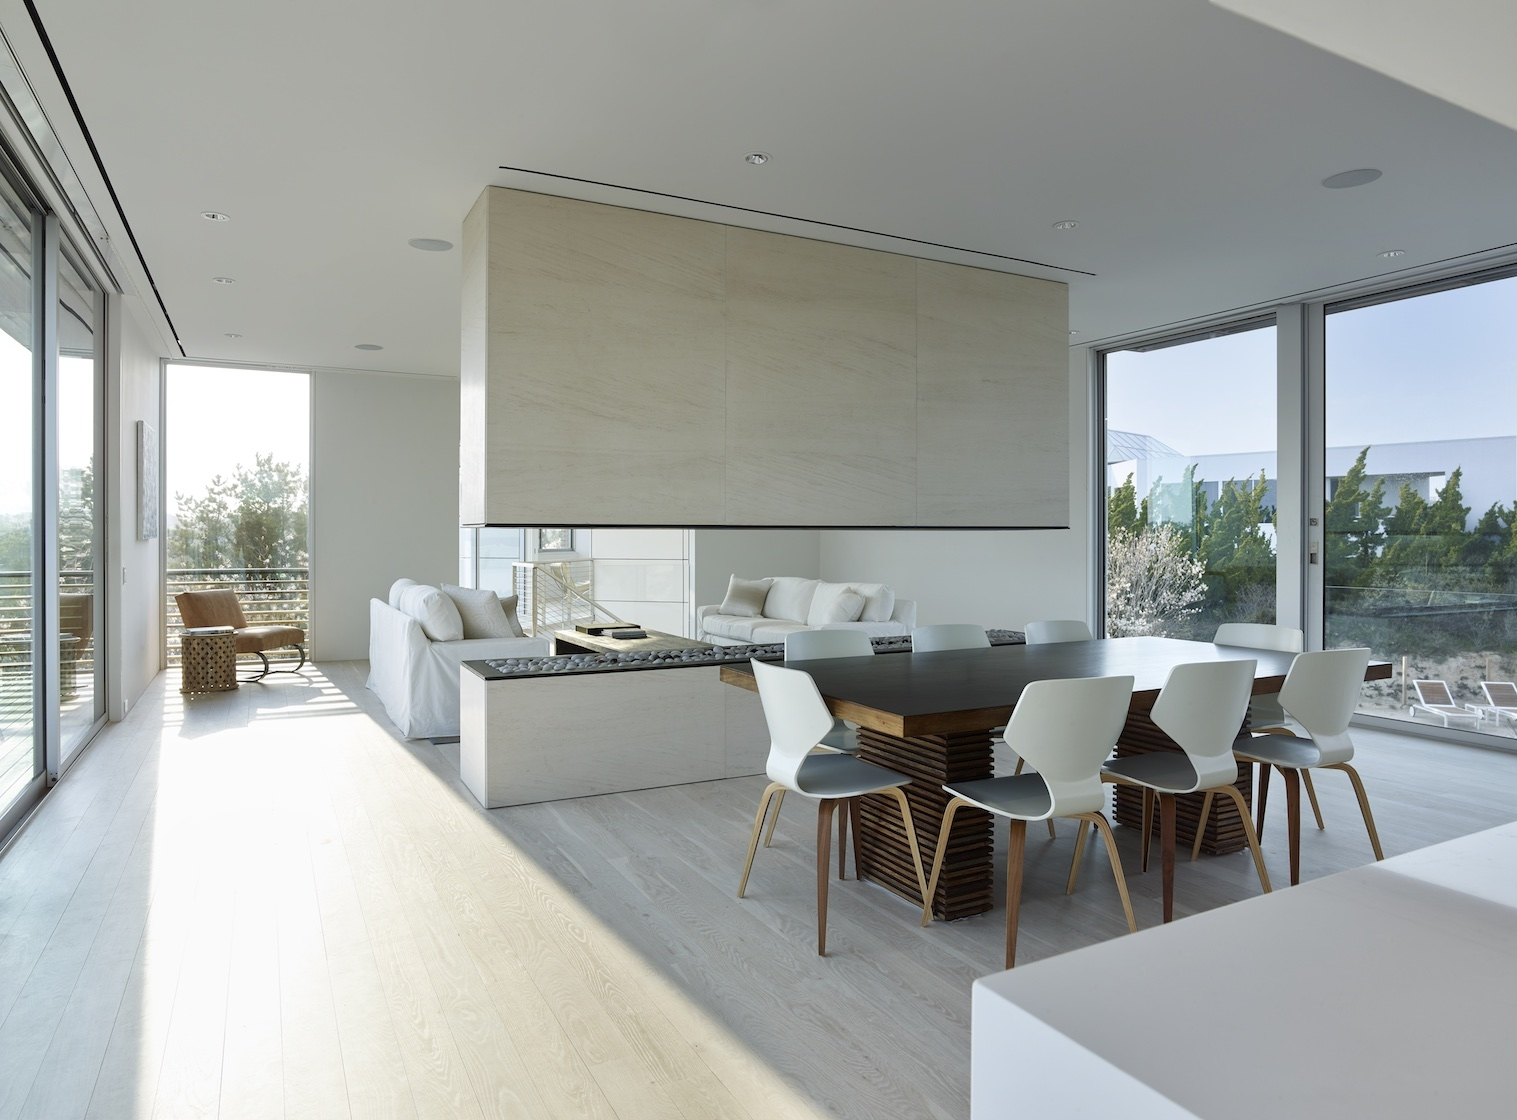 Amagansett, NY modern house dining room and fireplace